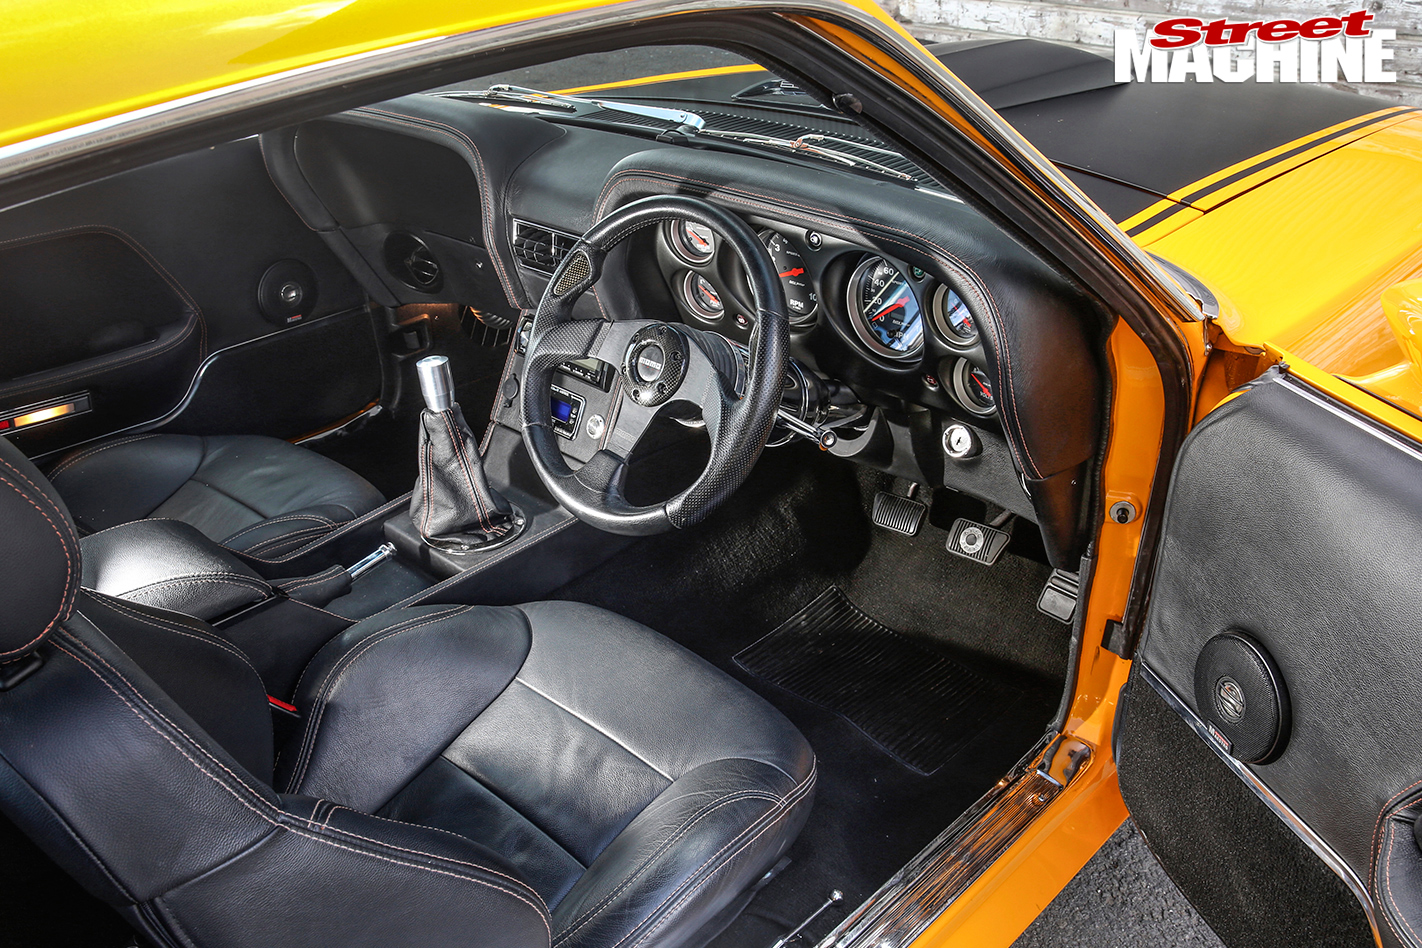 Ford -Mustang -BOSS-interior